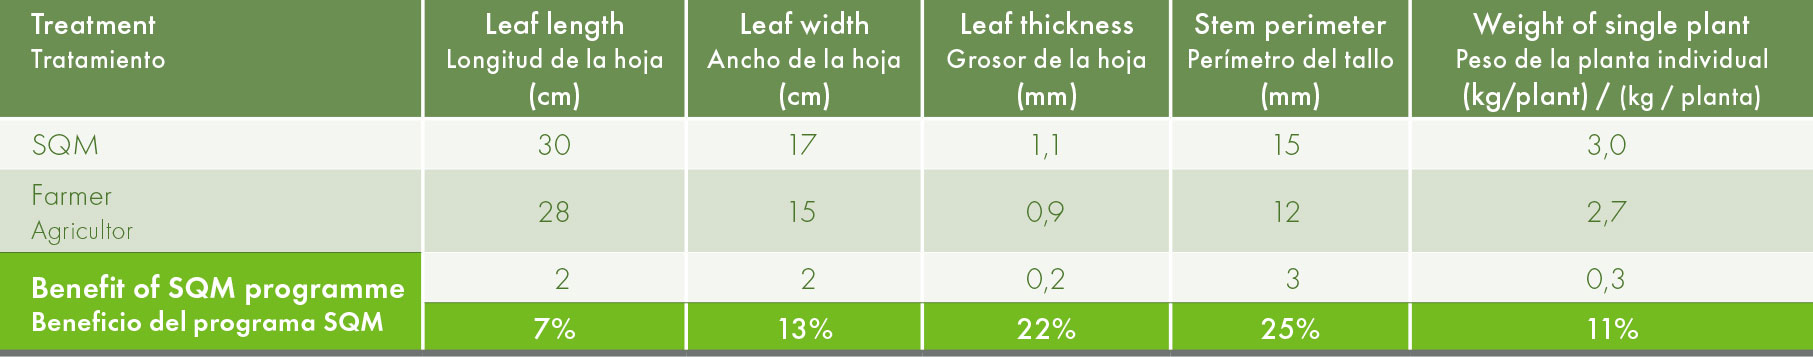 Crop development and gross ginger rhizome yield in averages of 10 plants/treatment.